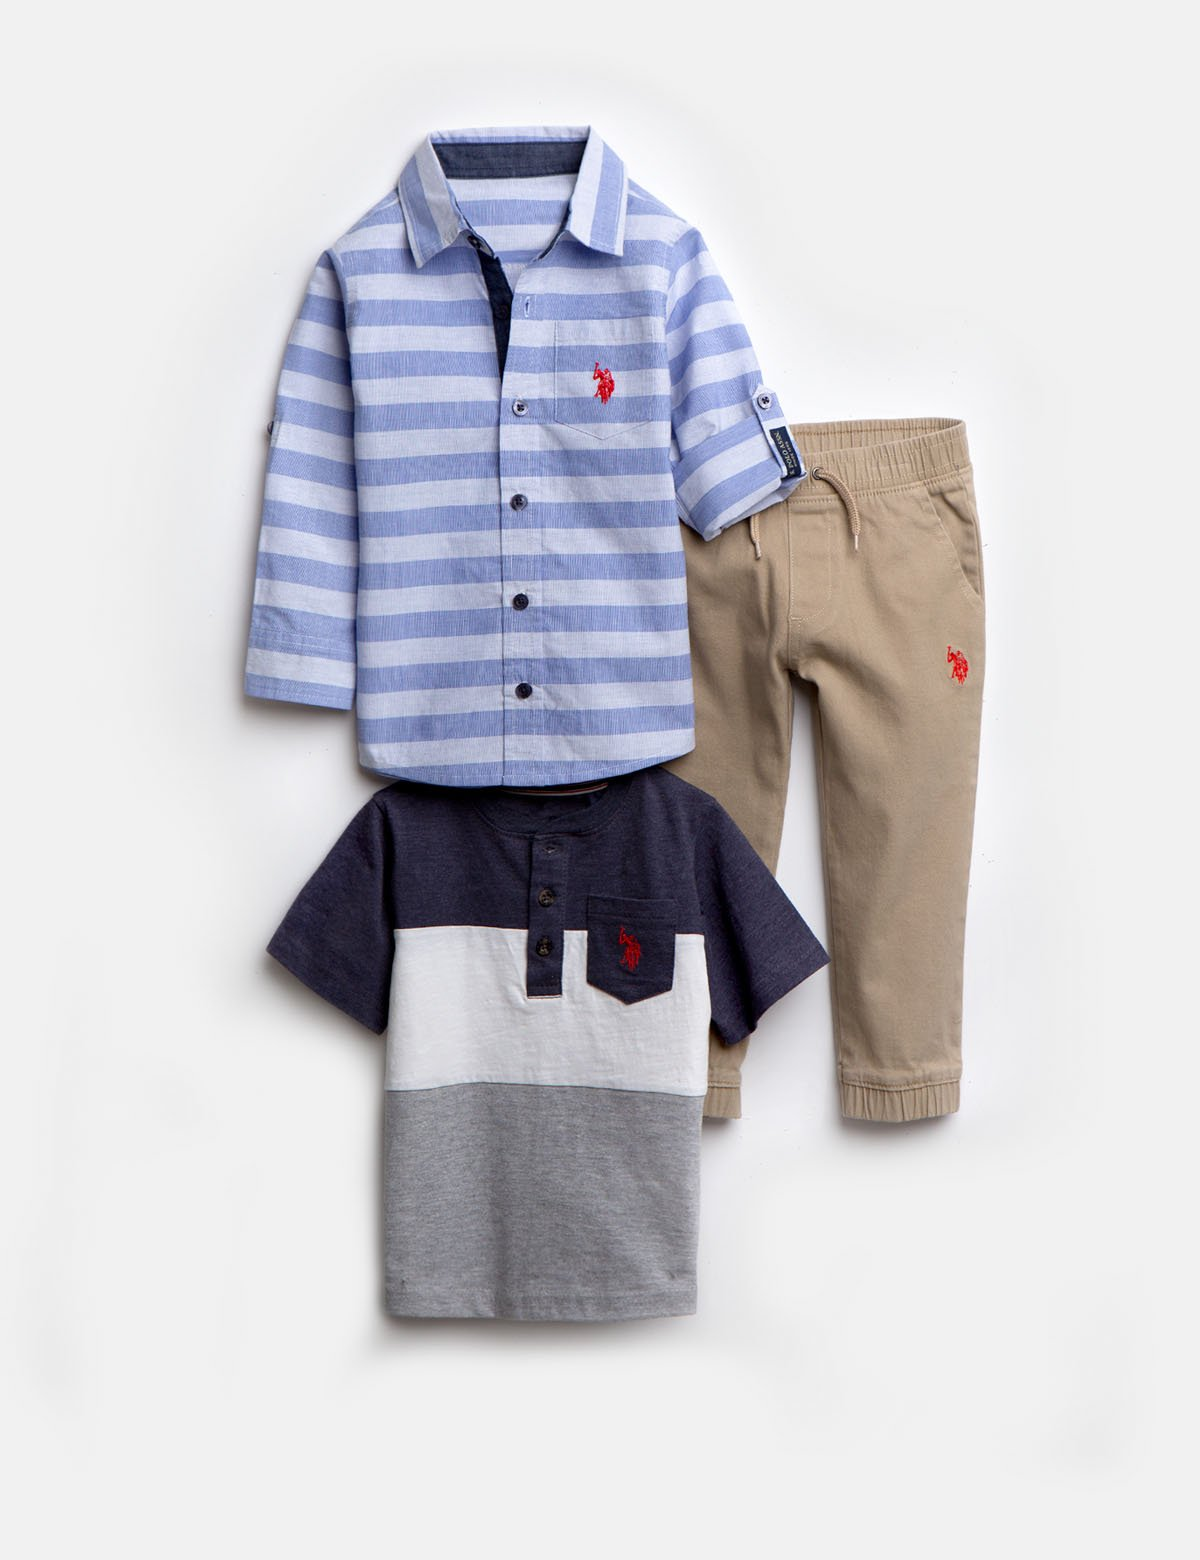 BOYS 3 PIECE SET: SHIRT, TEE & JOGGERS - U.S. Polo Assn.